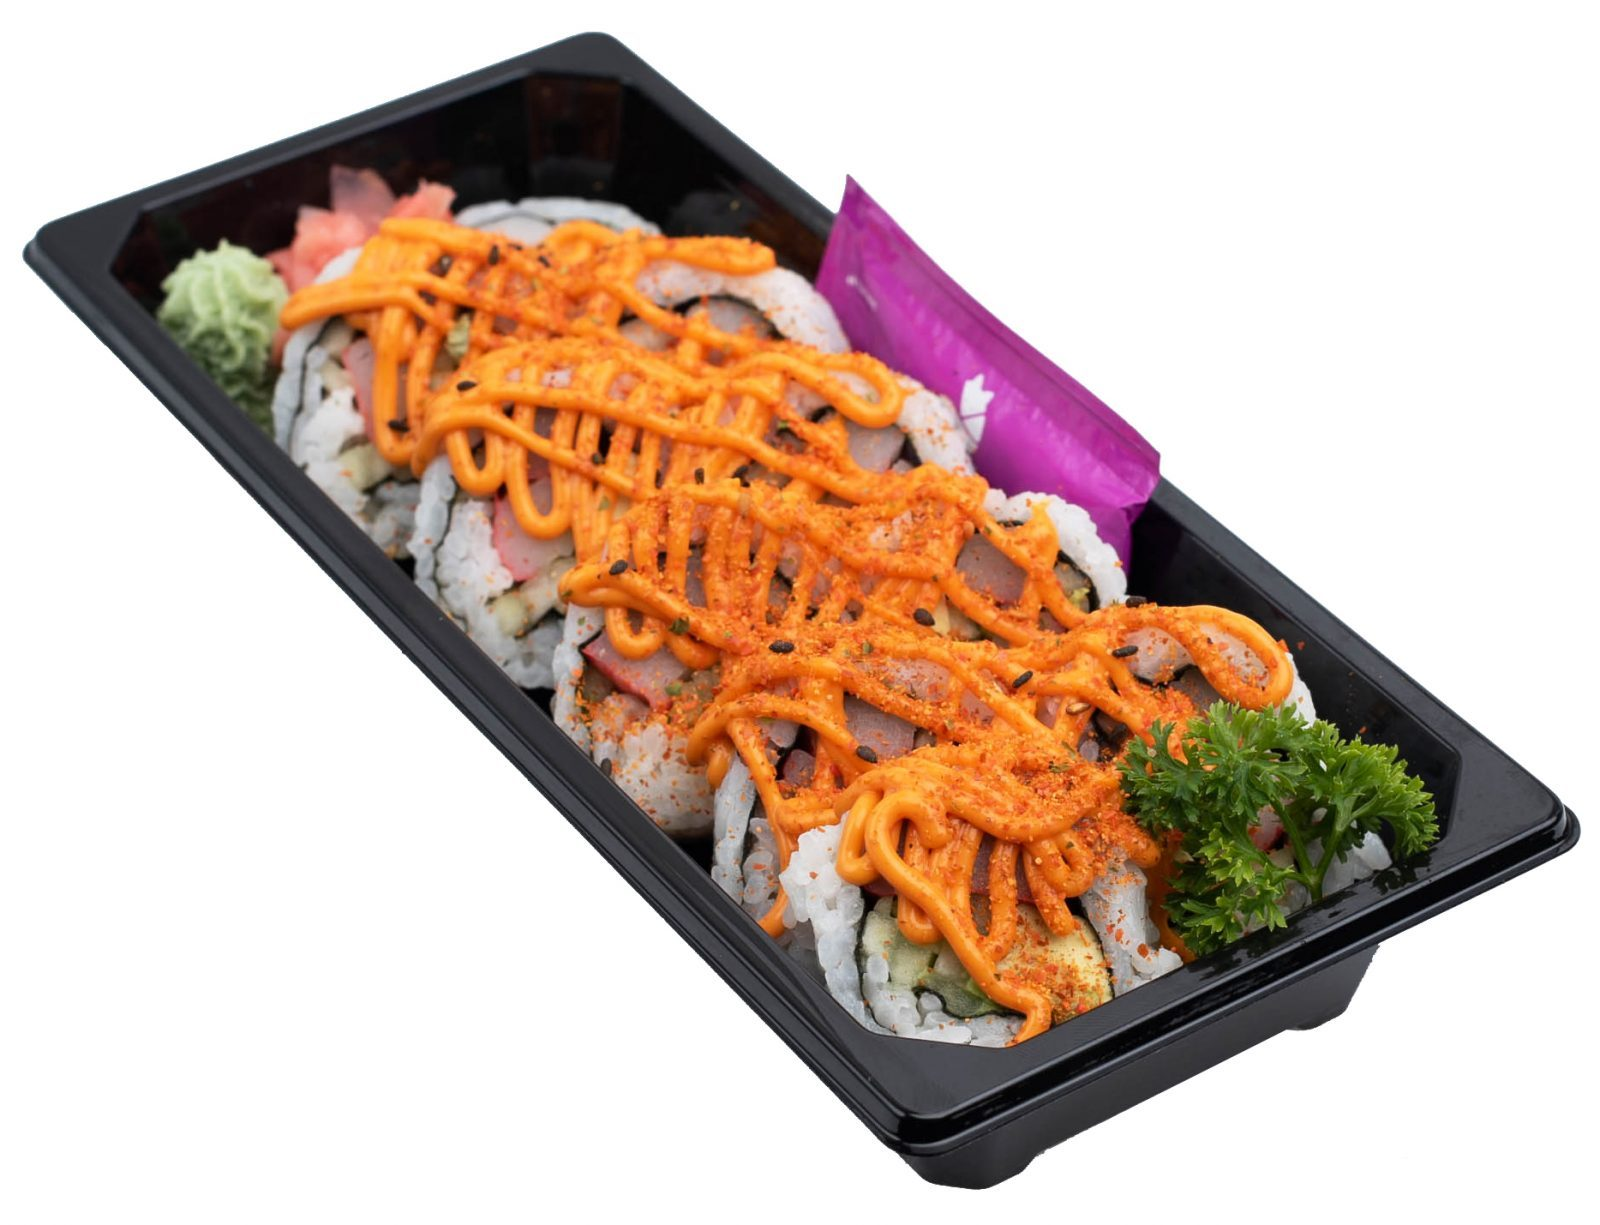 Spicy California Roll